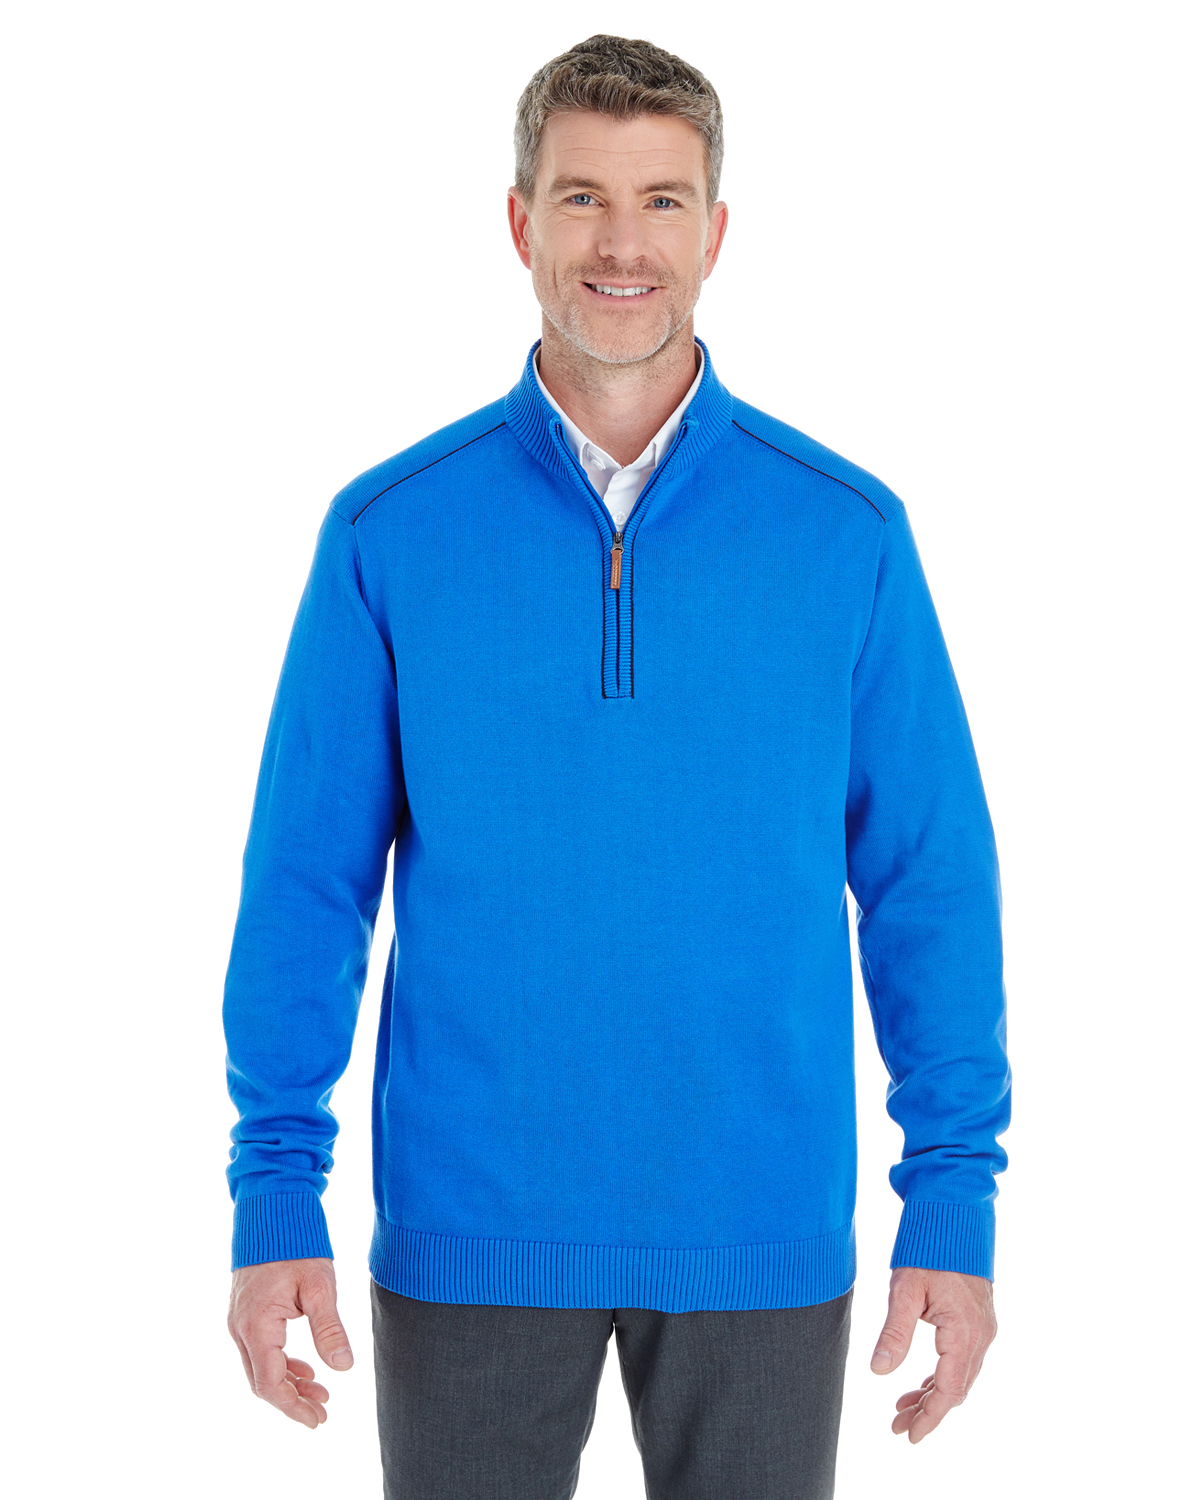 Devon & Jones - DG478 Men's Manchester Fully-Fashioned Quarter-Zip Sweater